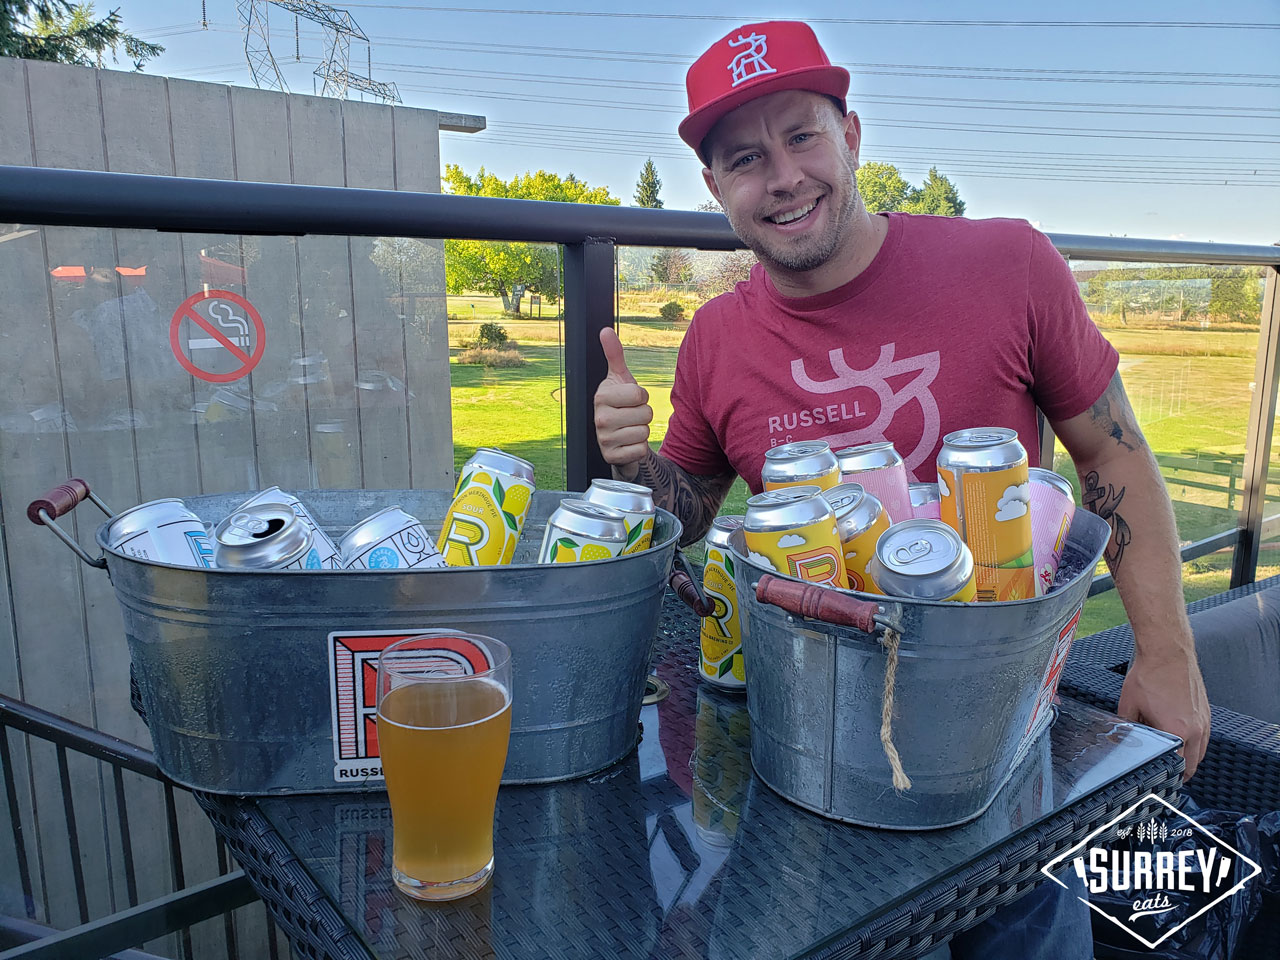 Walker from Russell Brewing gives the thumbs up at a table with two icebins of beer